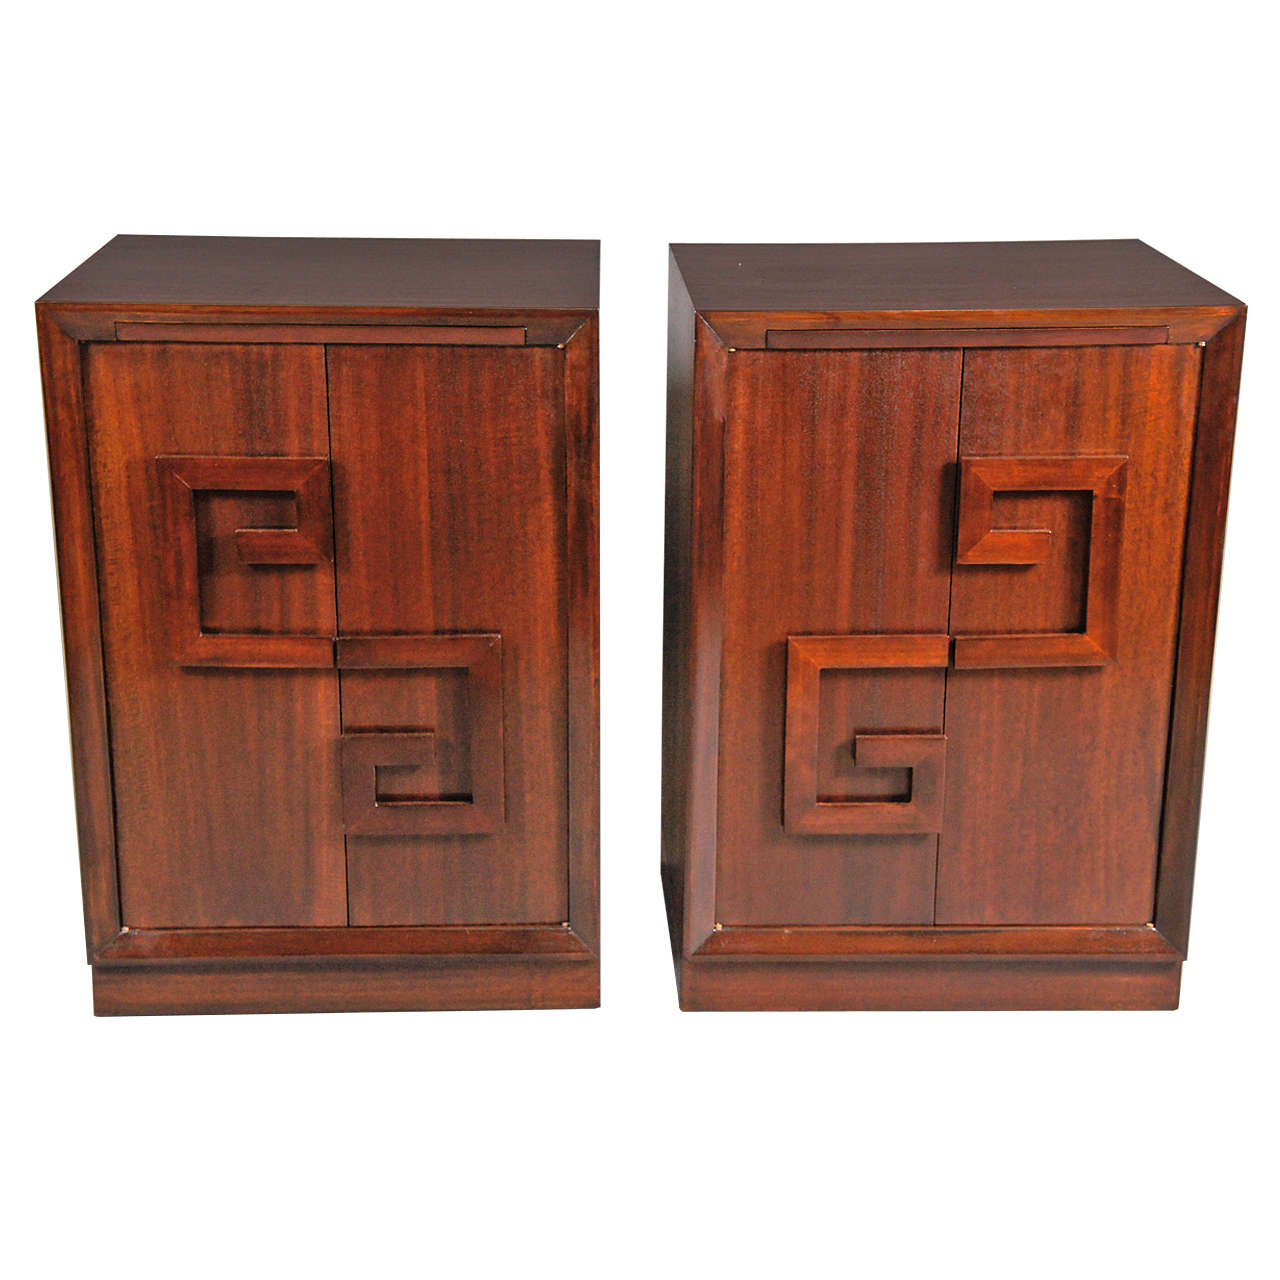 Pair of Kittinger Bedside Cabinets